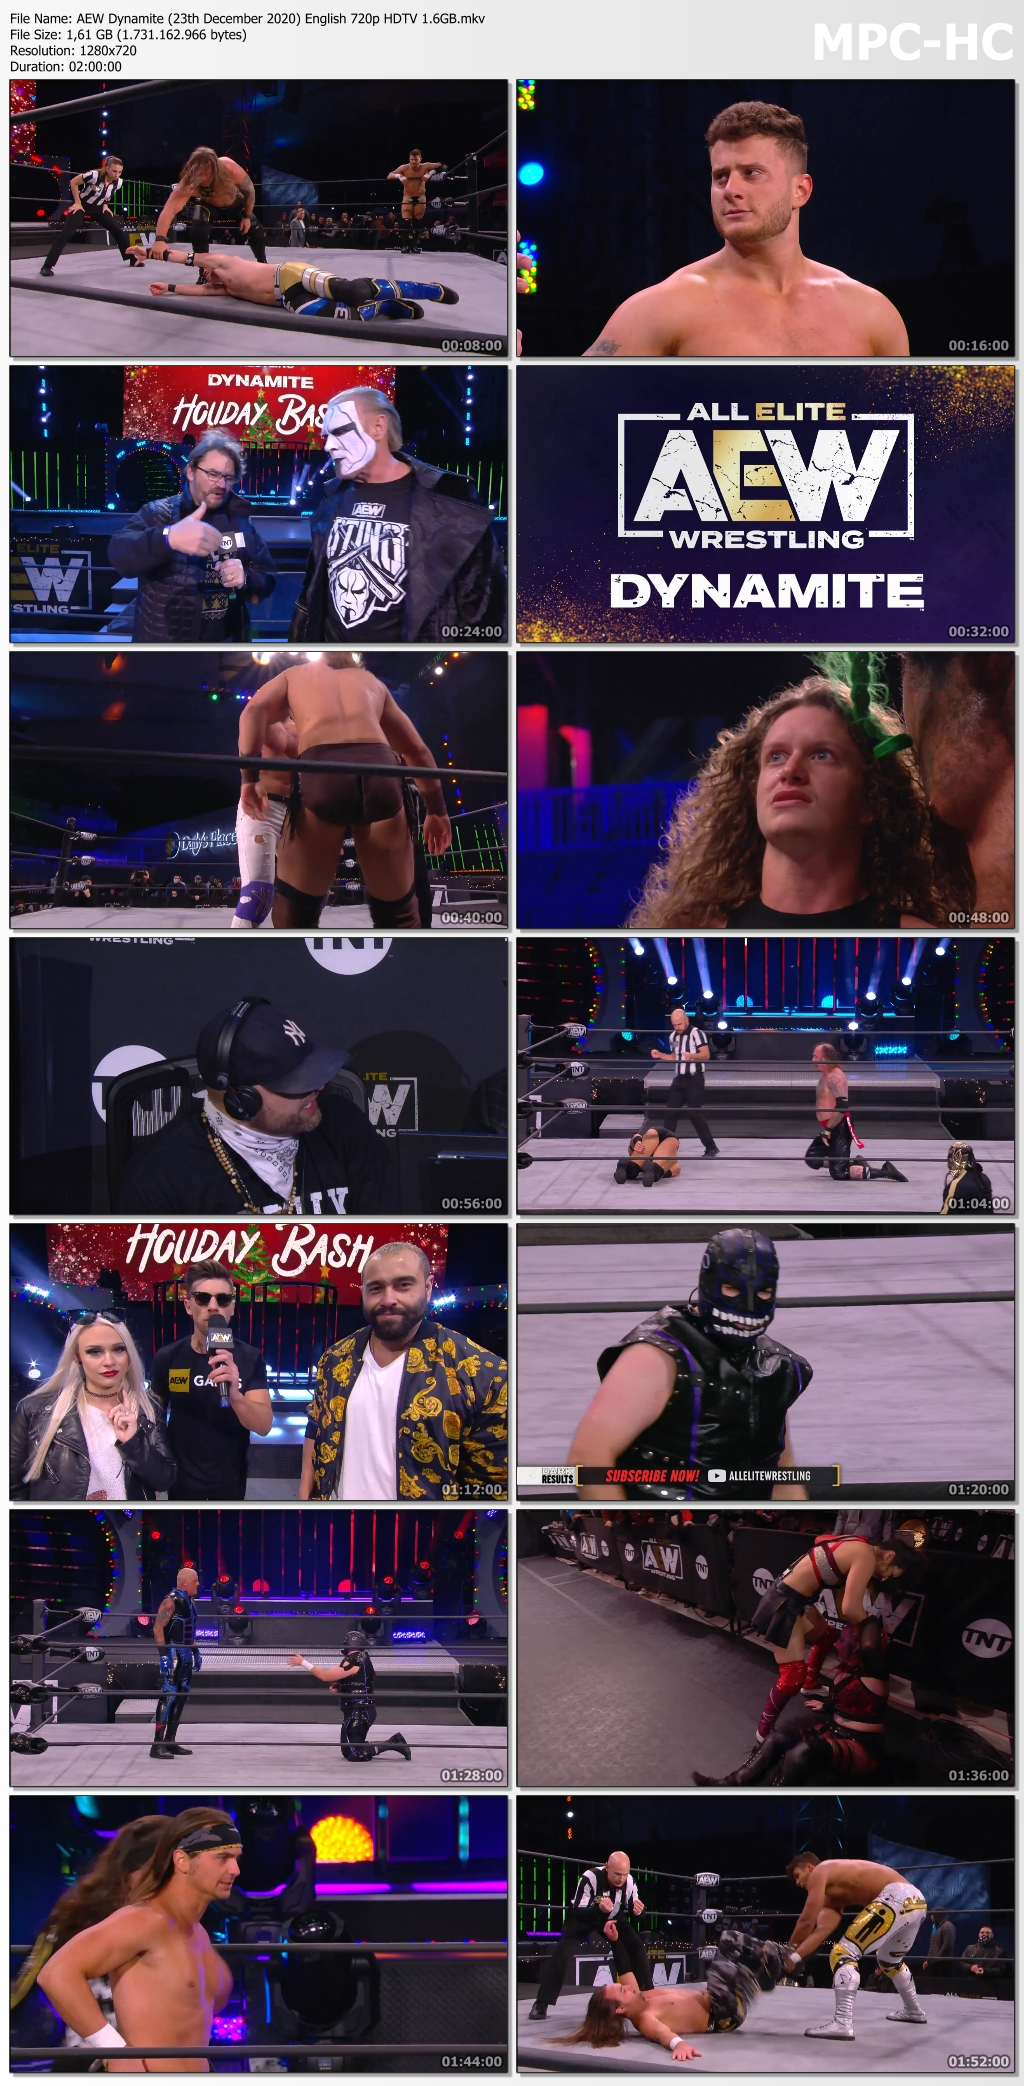 AEW-Dynamite-23th-December-2020-English-720p-HDTV-1-6-GB-mkv-thumbs